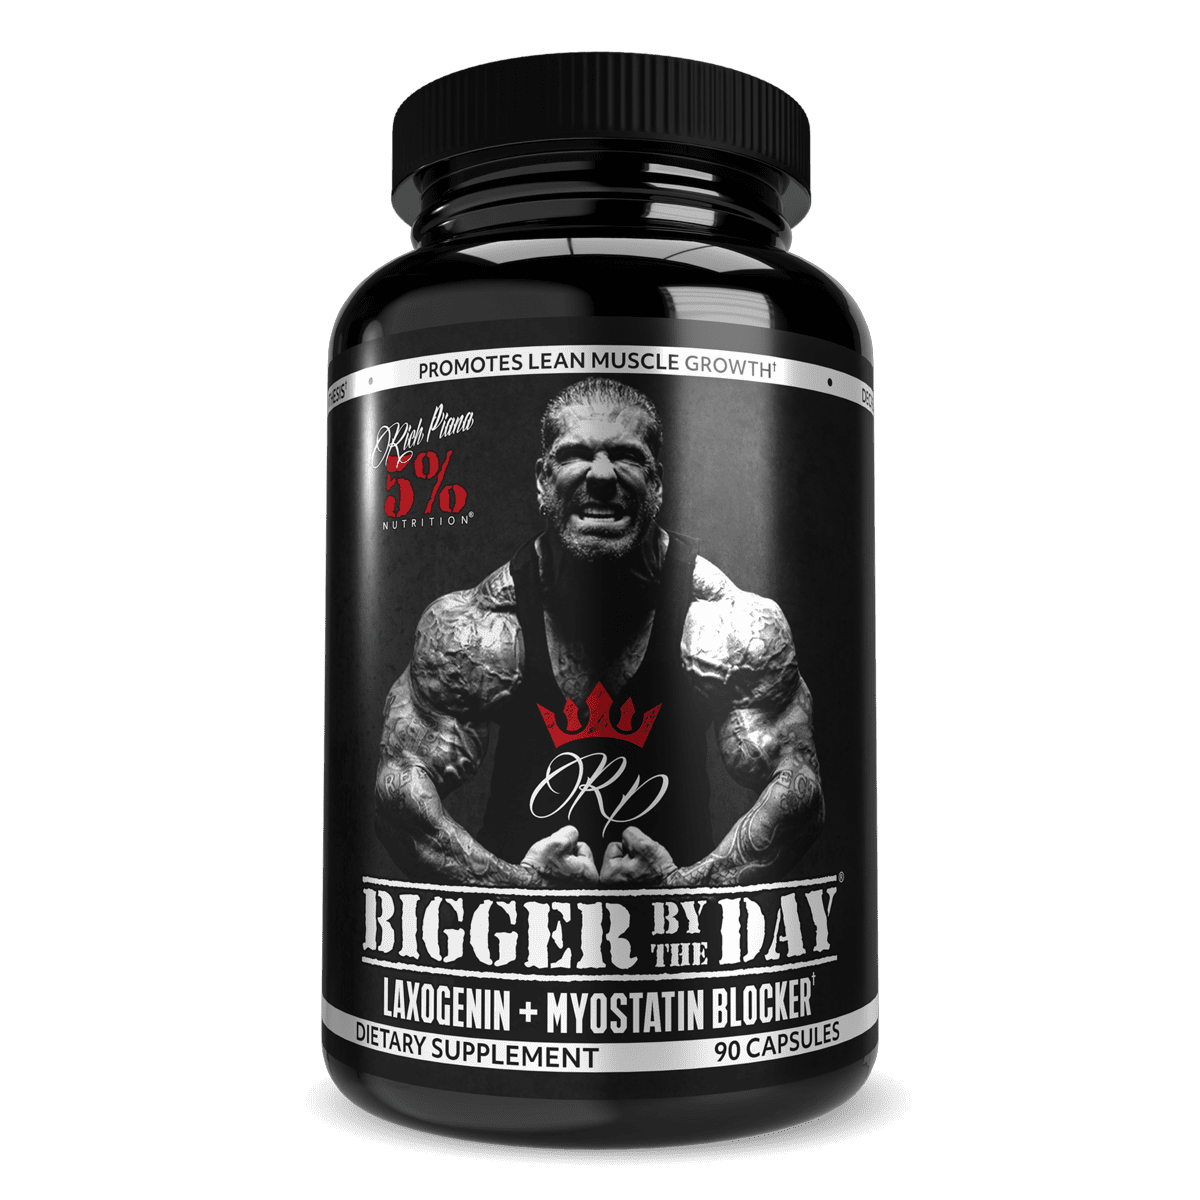 5%Nutrition - Bigger By The Day